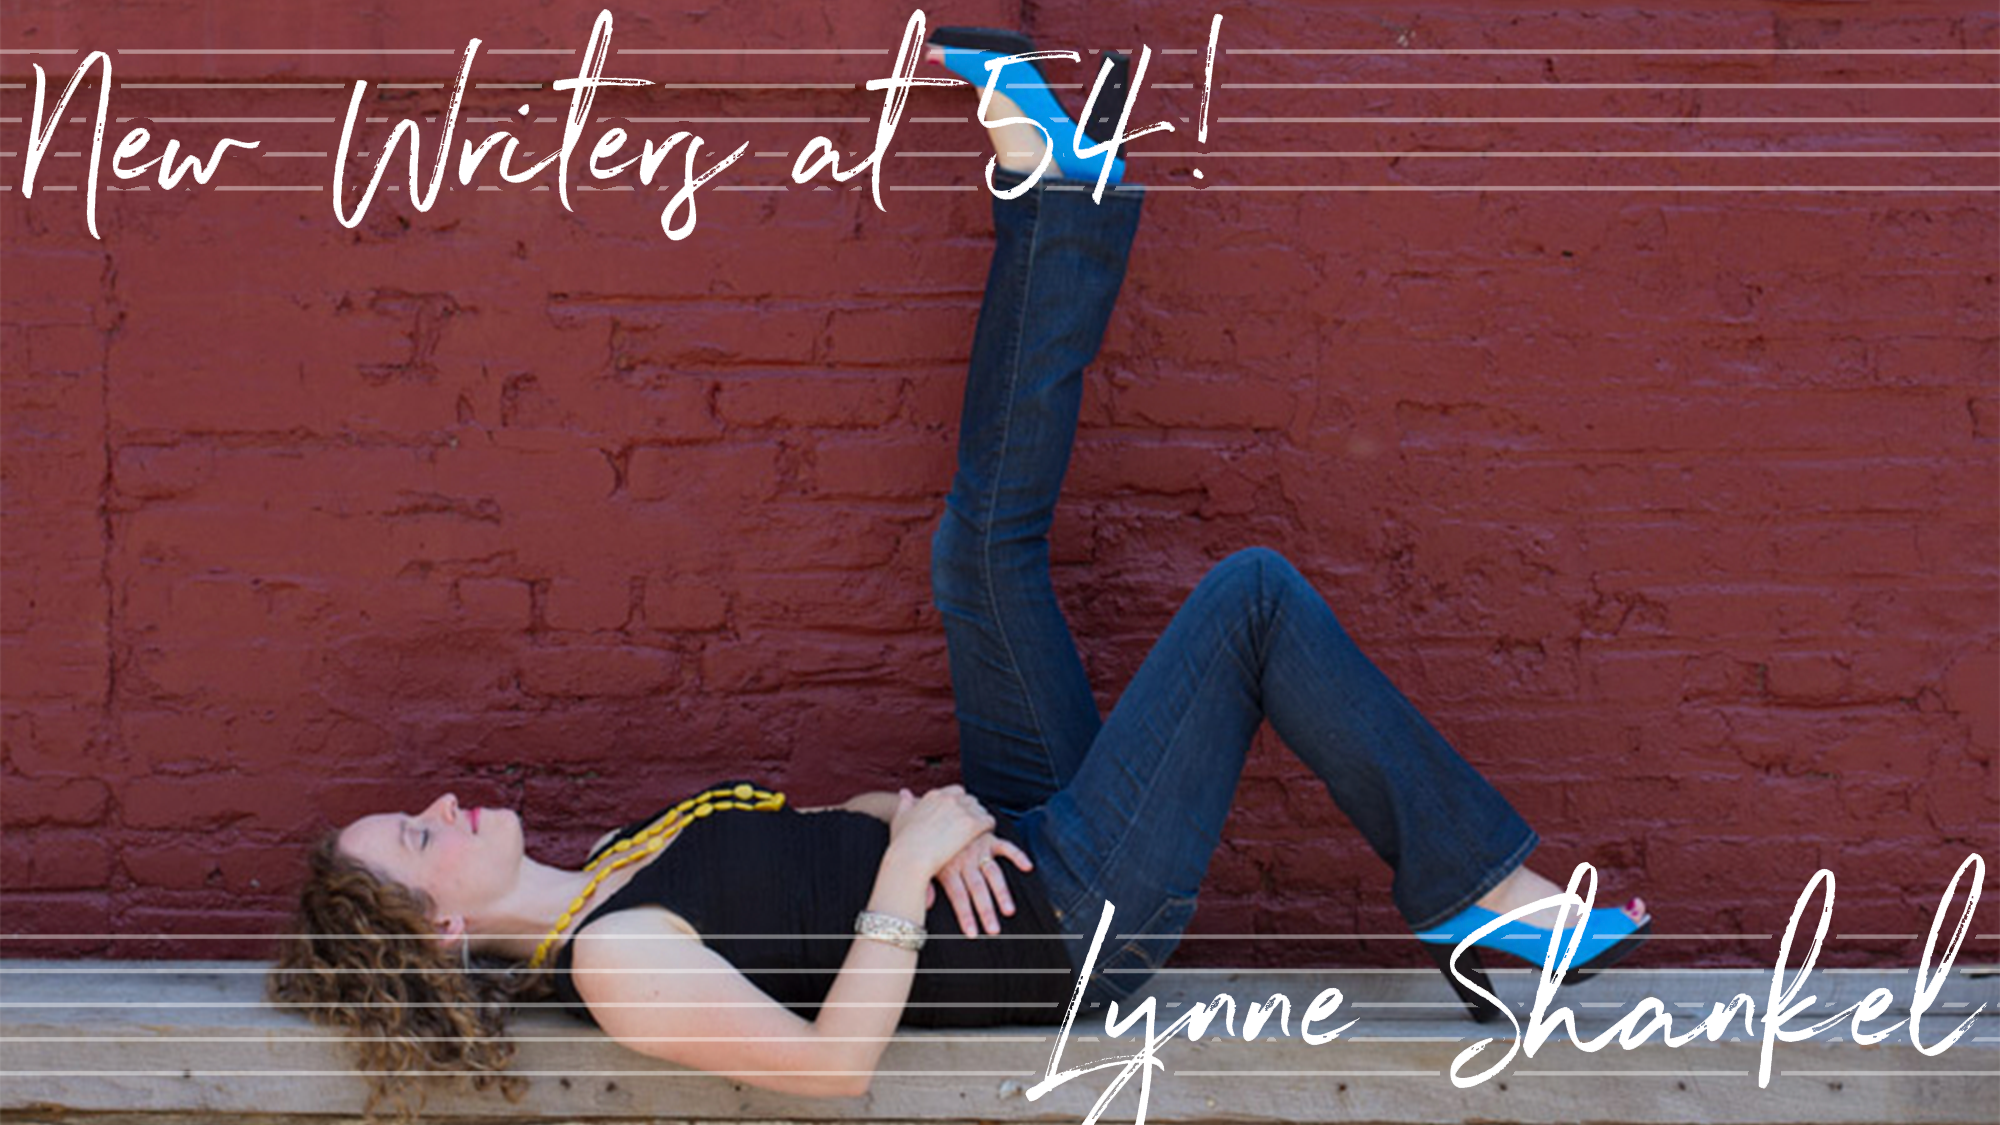 New Writers at 54! Lynne Shankel